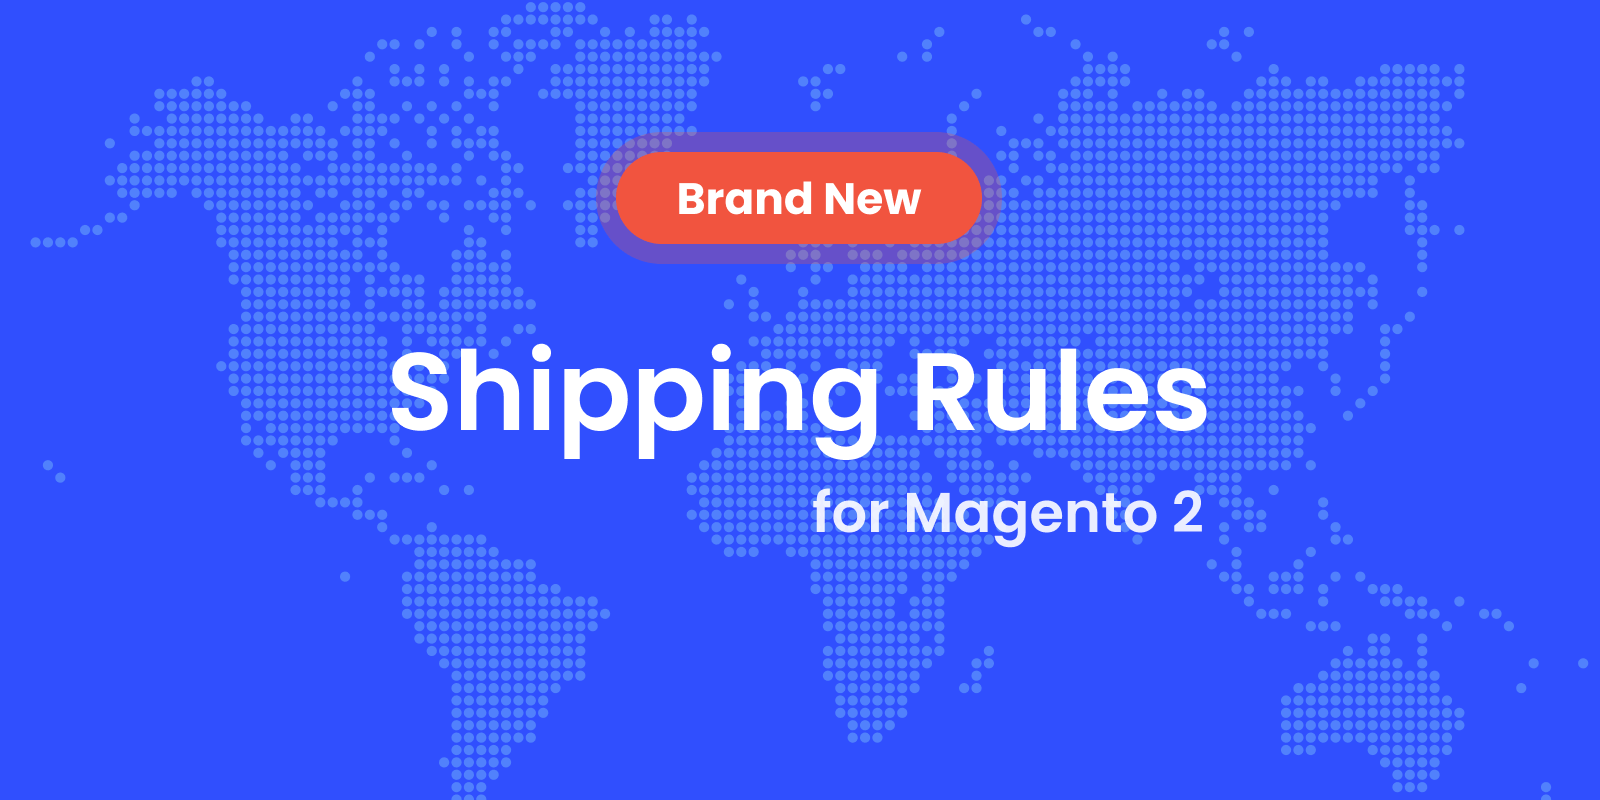 New Module: Magento 2 Shipping Rules